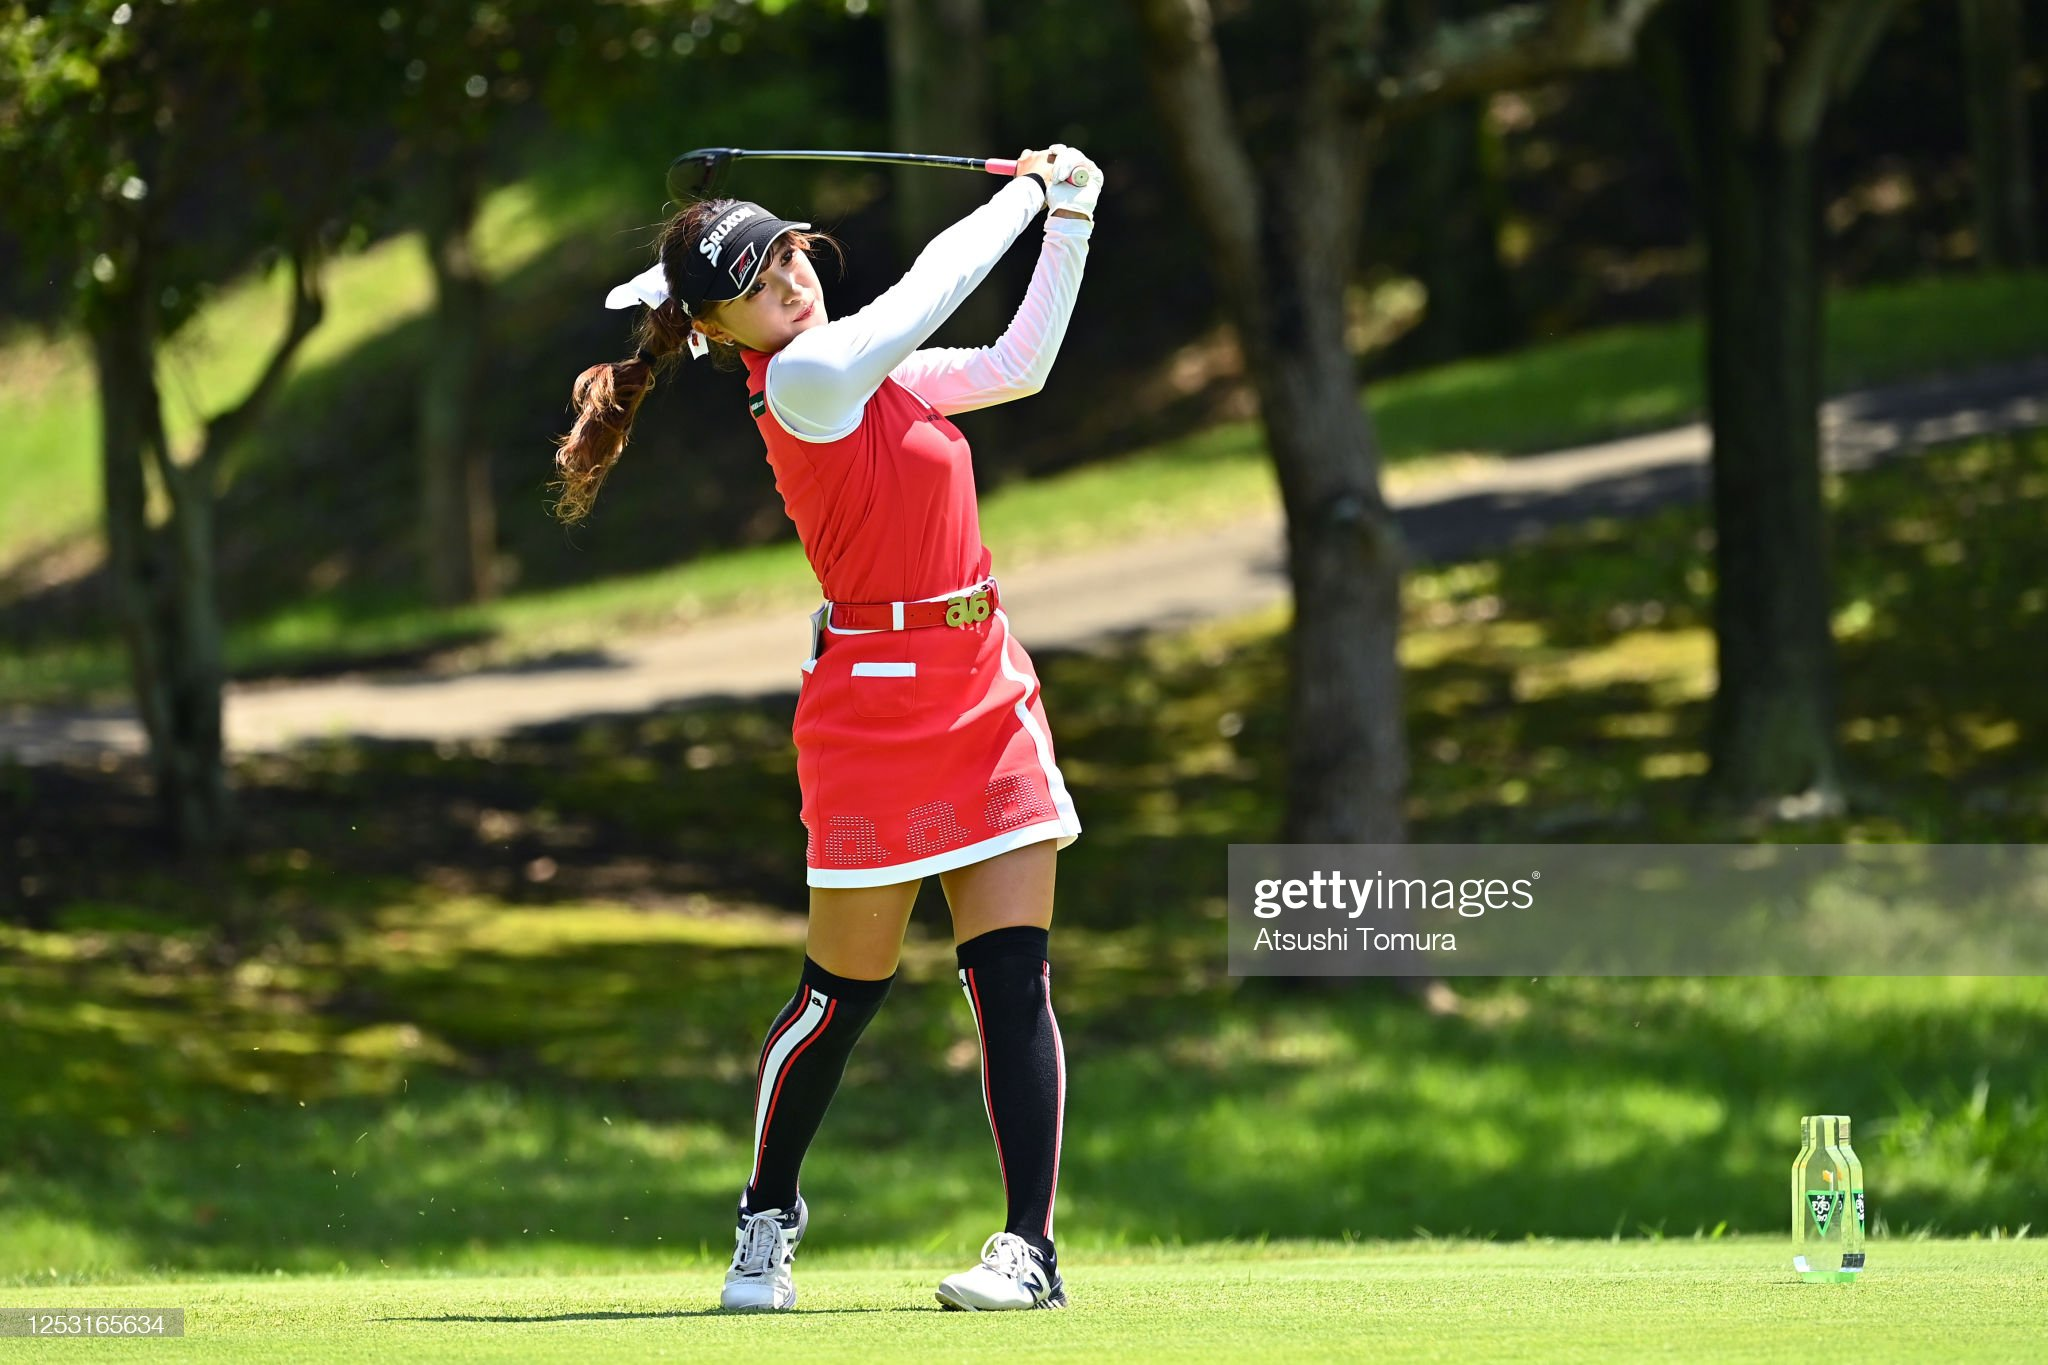 https://media.gettyimages.com/photos/reika-usui-of-japan-hits-her-tee-shot-on-the-5th-hole-during-the-of-picture-id1253165634?s=2048x2048